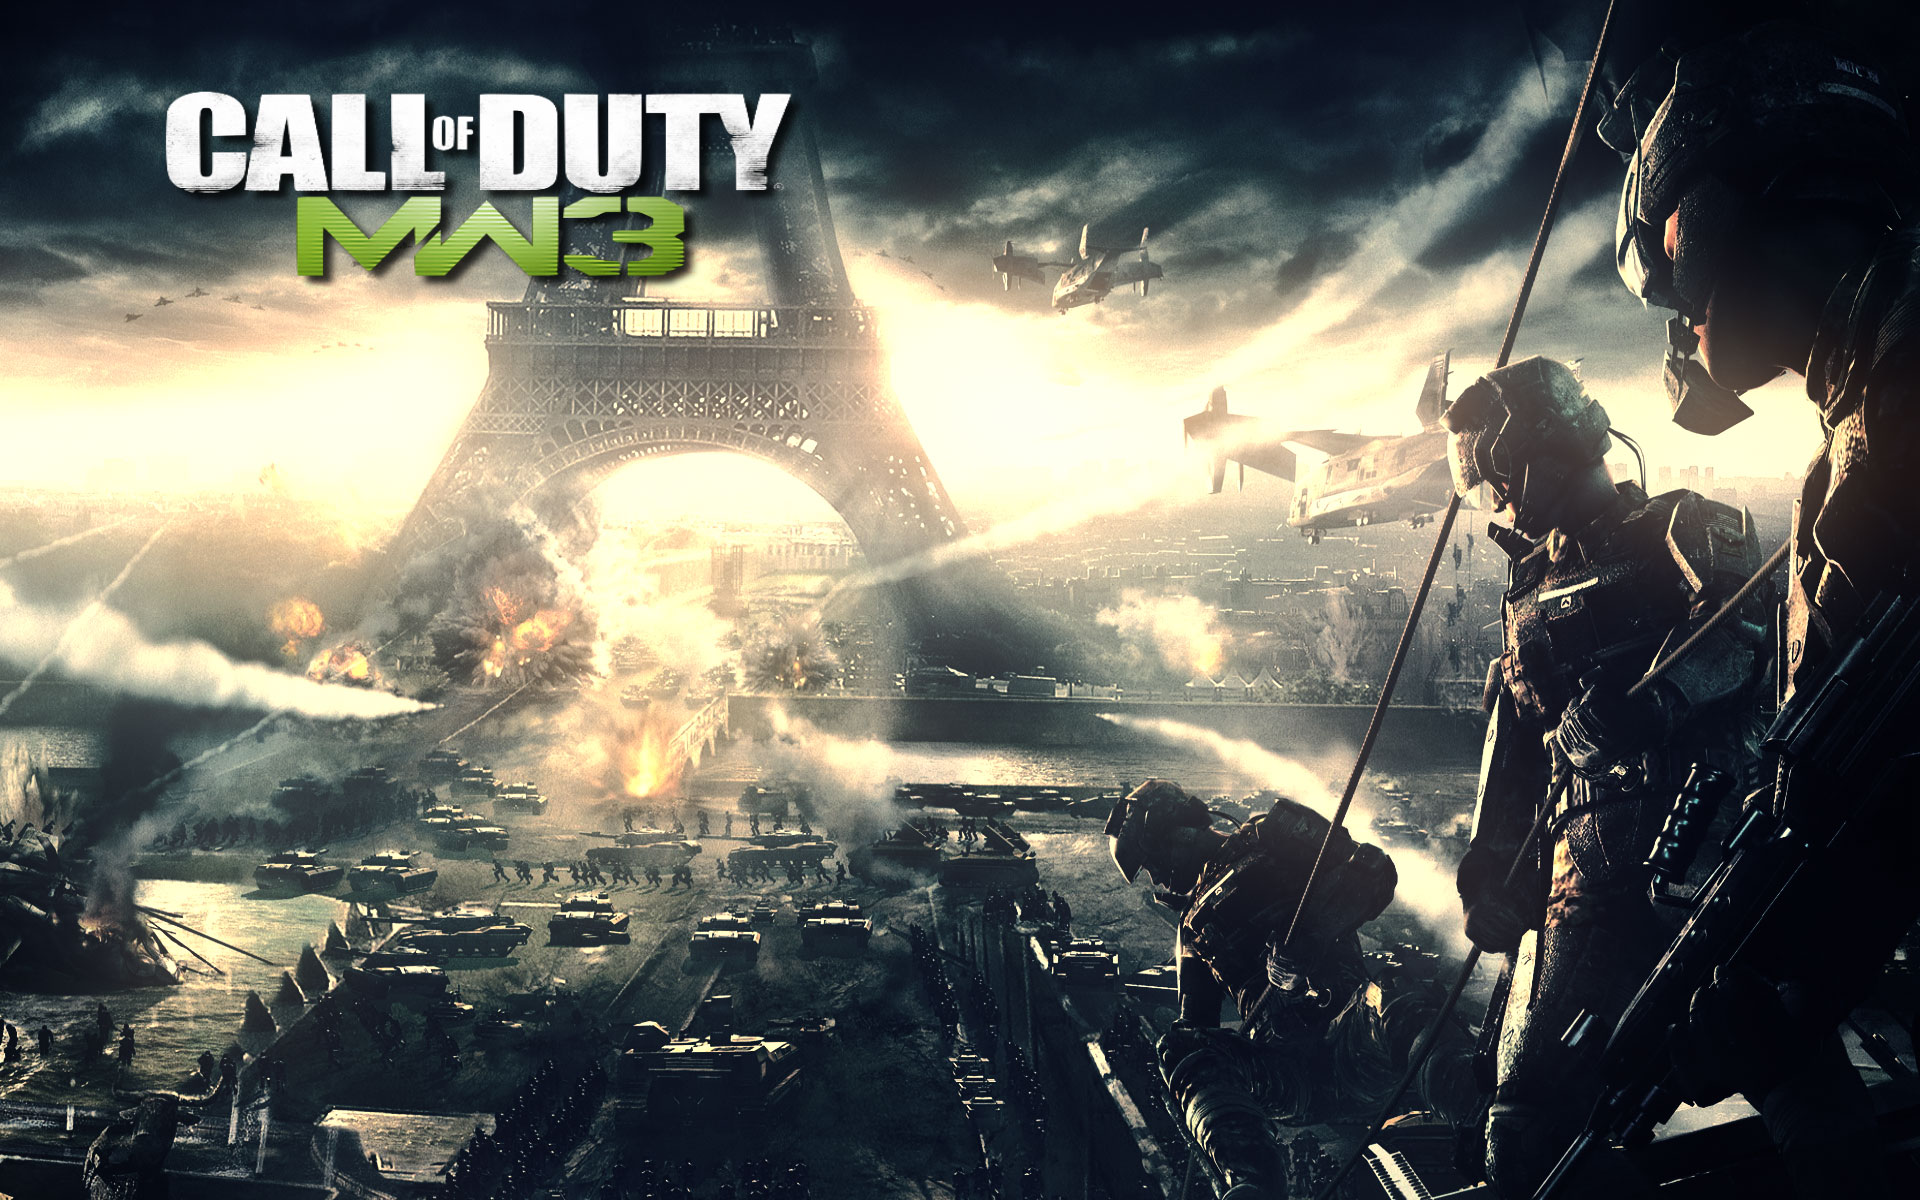 Call Of Duty: Modern Warfare 3 wallpapers, Video Game, HQ